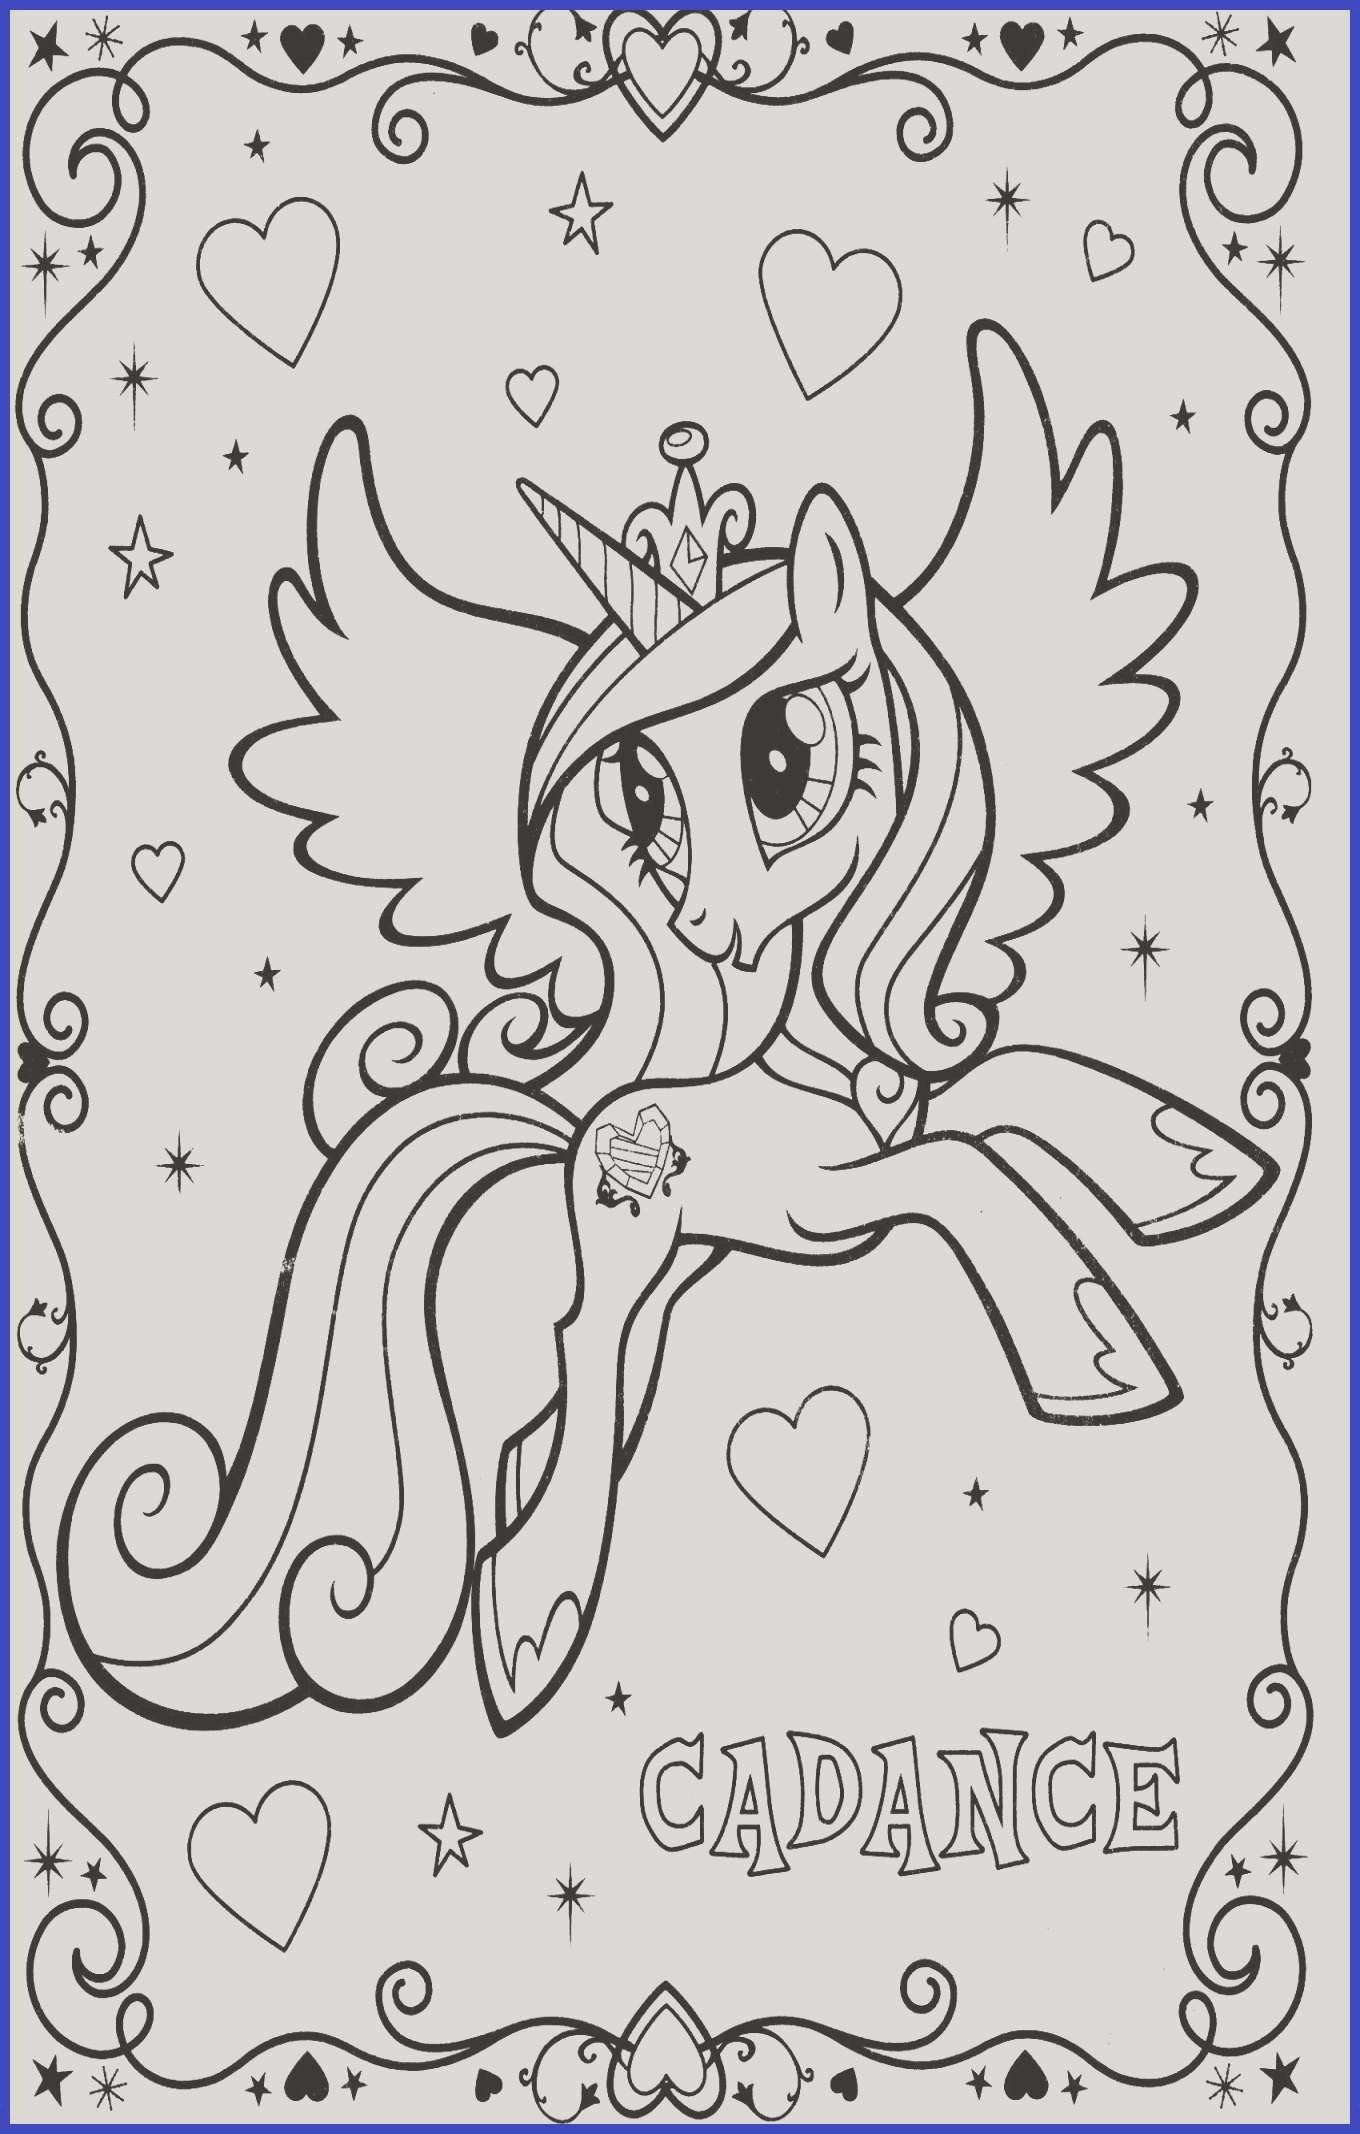 Shimmer And Shine Coloring Page Fresh 31 Kostenlose Shimmer And Shine Ausmalbilder Ausdru Unicorn Coloring Pages My Little Pony Unicorn My Little Pony Coloring